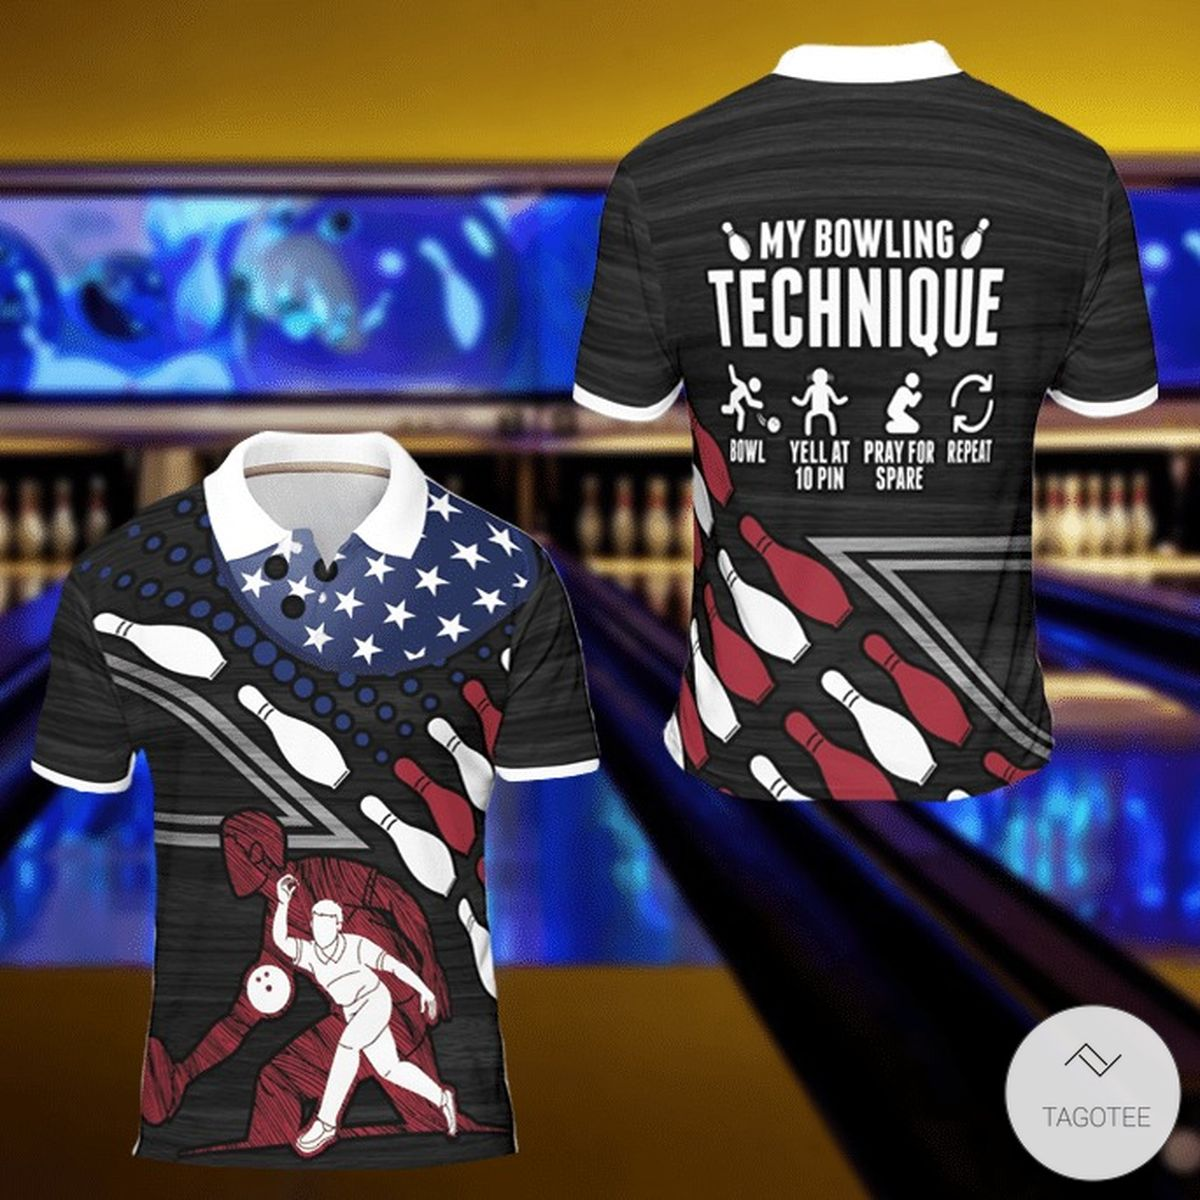 My Bowling Technique Bowl Yell At 10 Pin Pray For Spare Repeat Polo Shirt